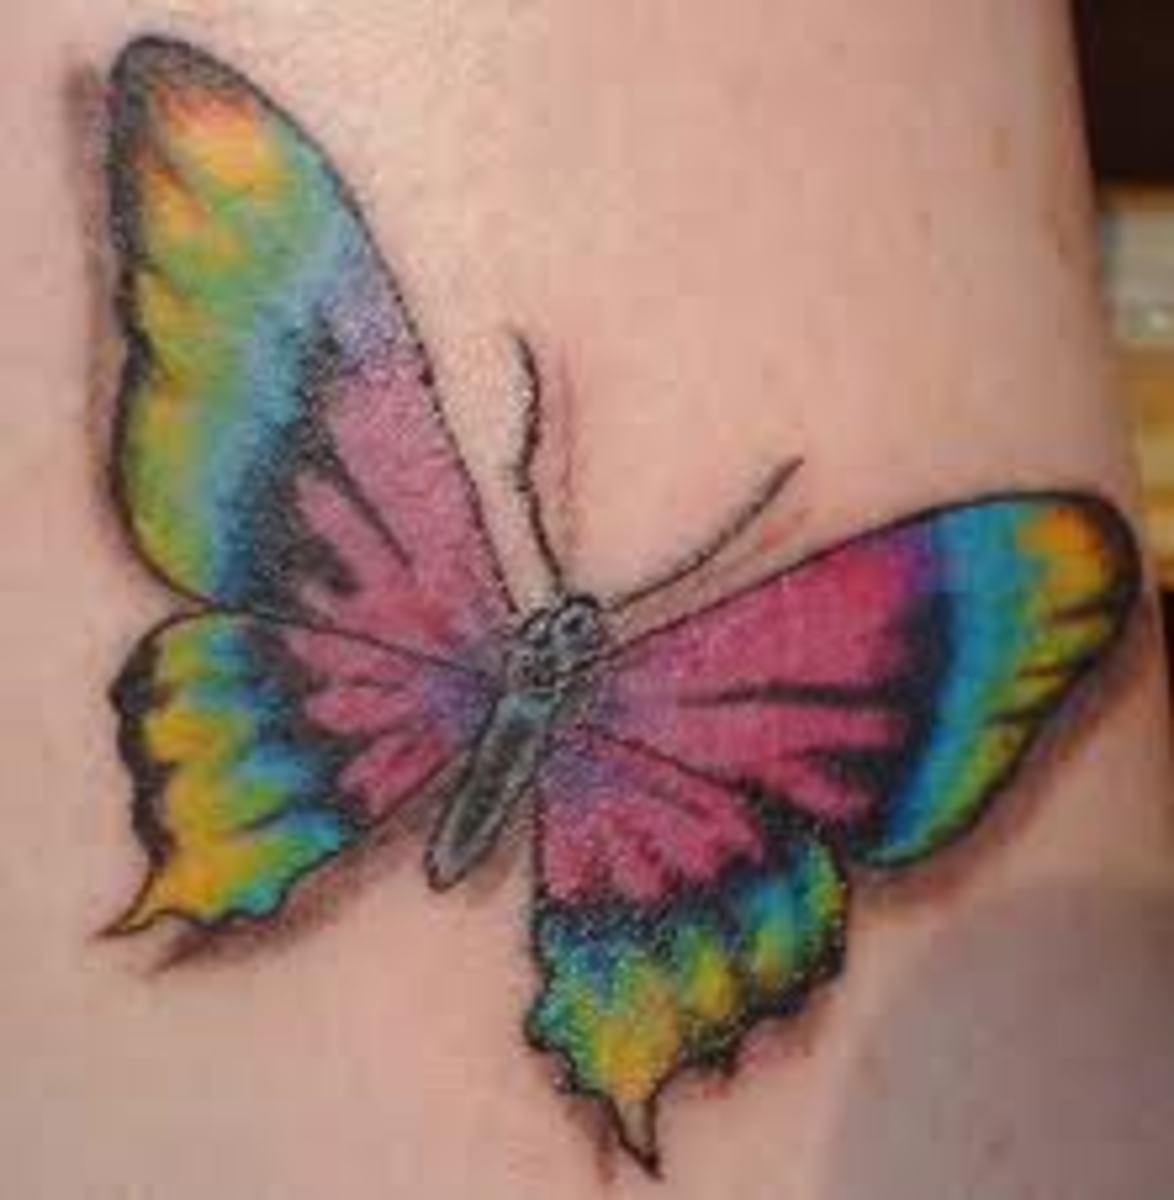 This butterfly shows maximum extent of colors.